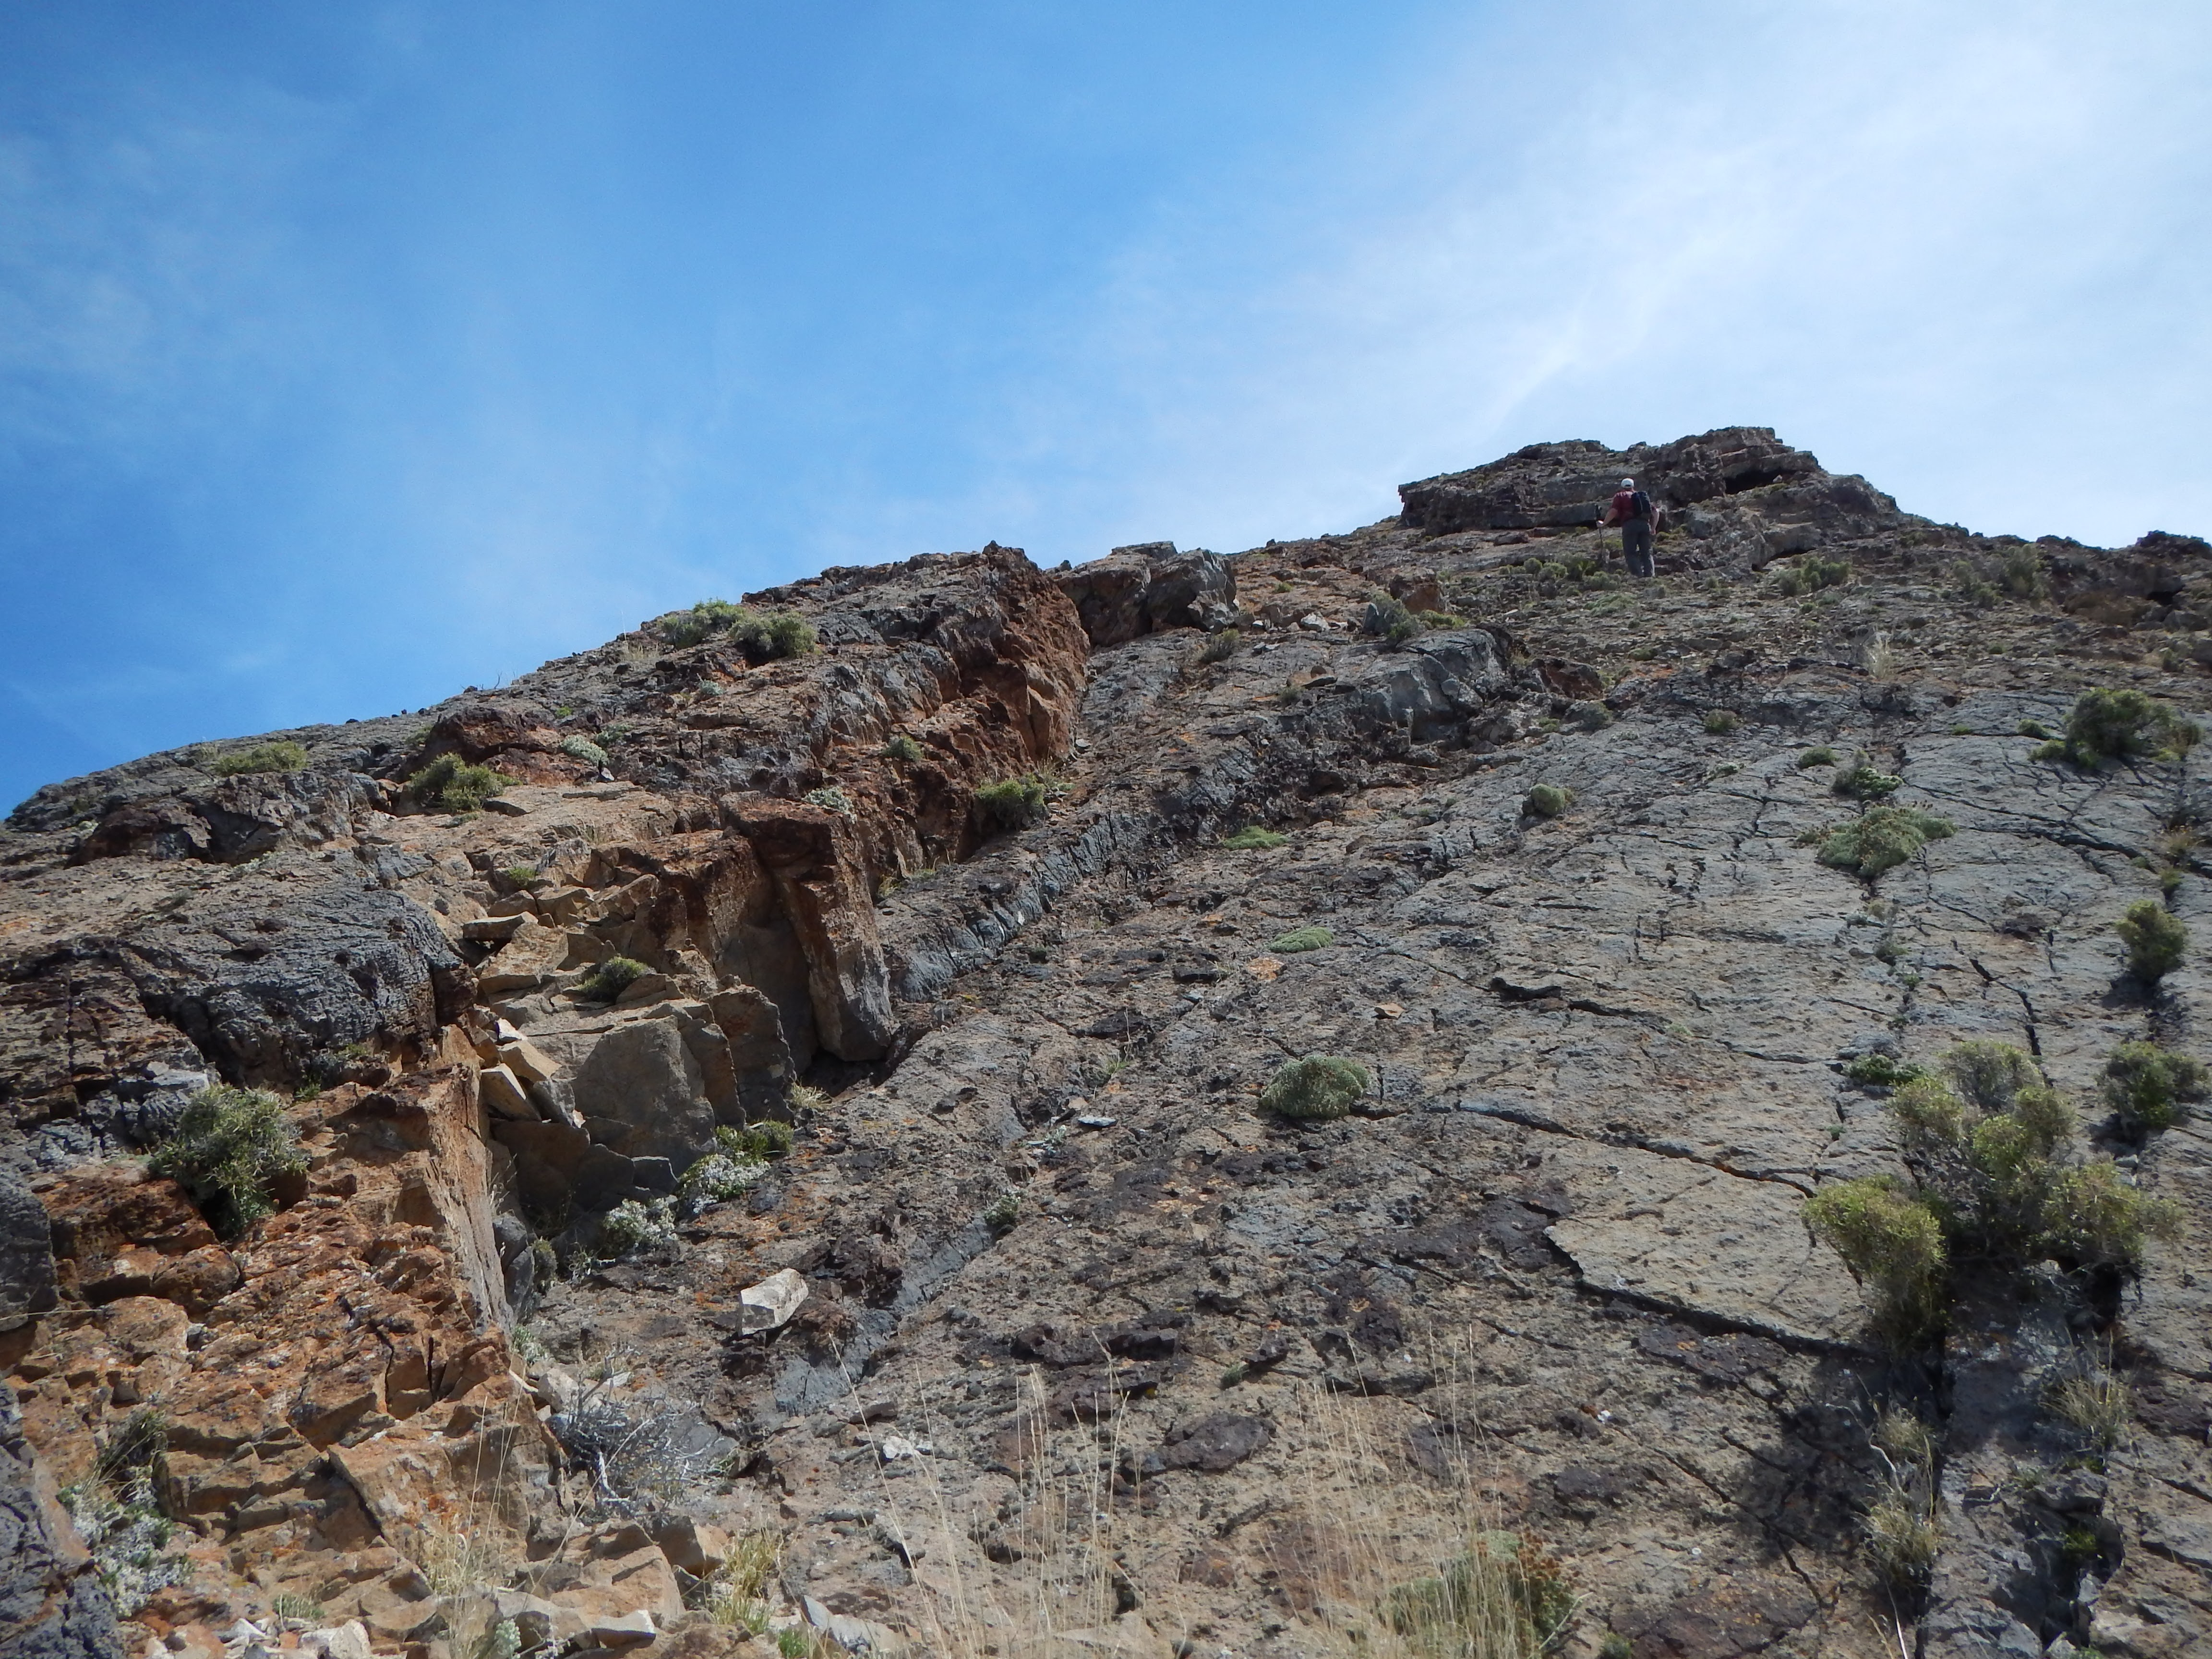 Photo: Less crumbly, but steeper rock slabs lie ahead.